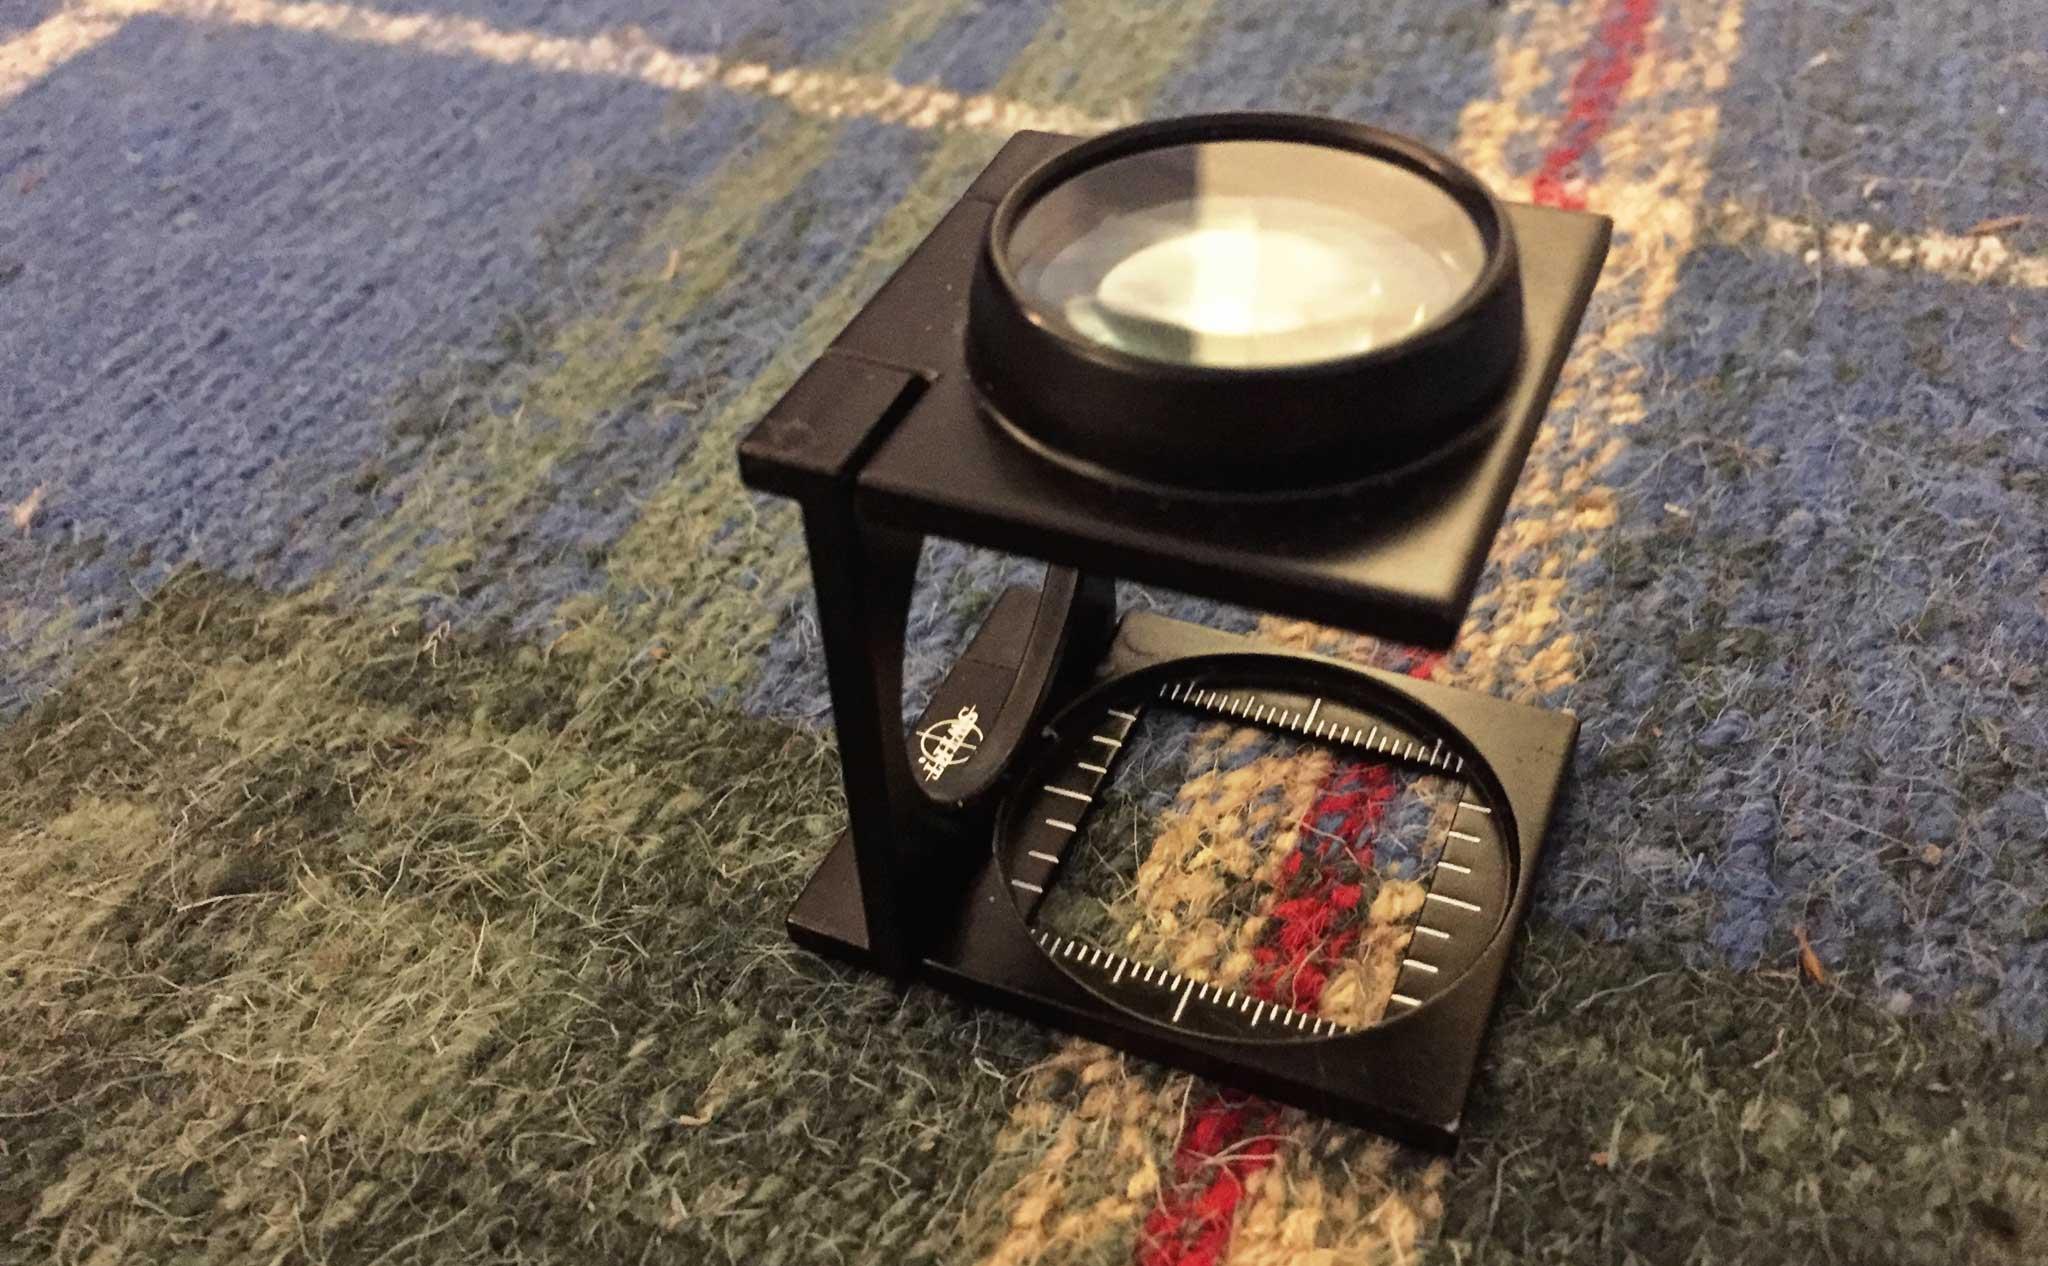 A linen tester is utilized to more easily count and verify the number of knots per square inch in any carpet. The Ruggist's trusty and now twenty-one (21) year old linen tester is shown here on a custom Nova Scotia Tartan carpet made by New Moon for The Ruggist in 2009. | Image courtesy of The Ruggist.